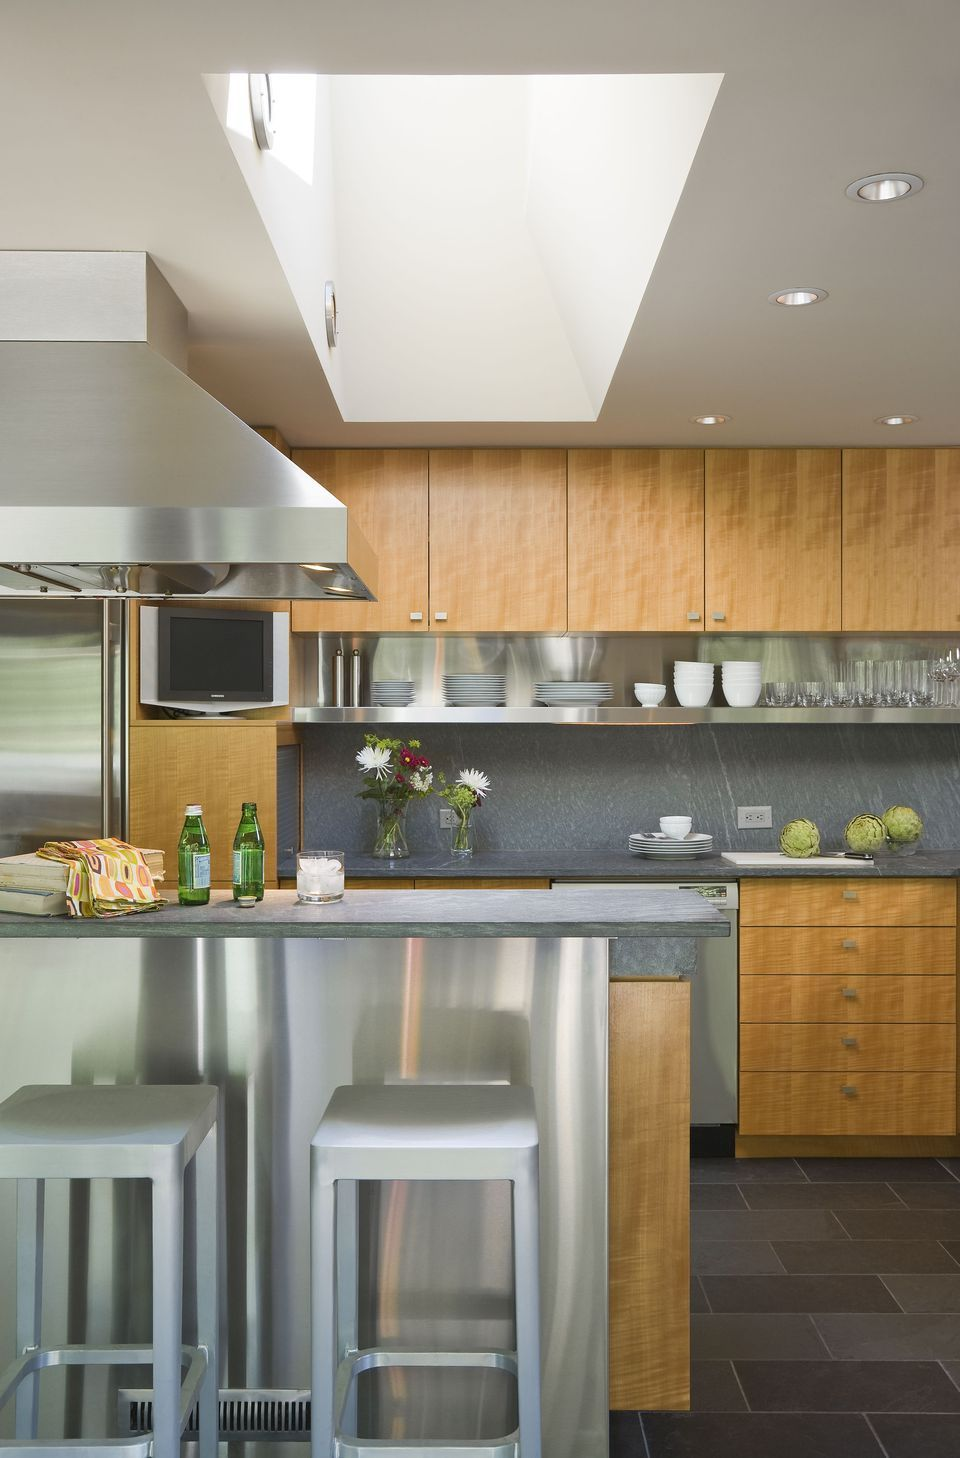 How The 10' X 10' Kitchen Can Help You Design Your Own Kitchen Captivating Design Your Own Kitchens Design Ideas